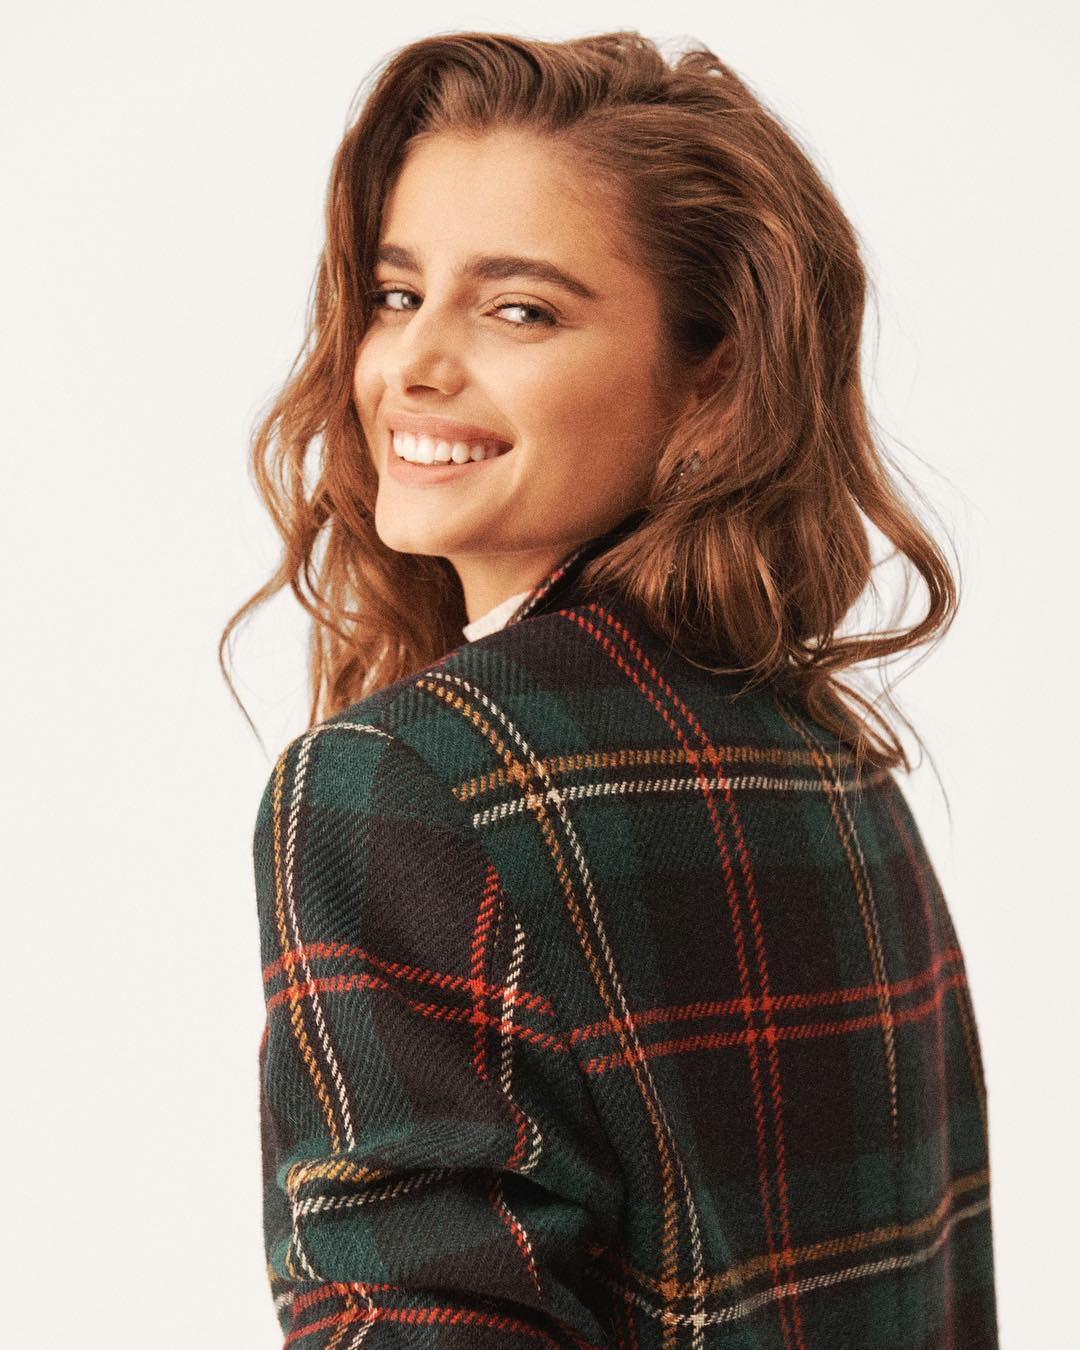 Christmas Outfit Ideas 2020 Taylor Hill Wearing Christmas Outfit Ideas From Ralph Lauren 2020